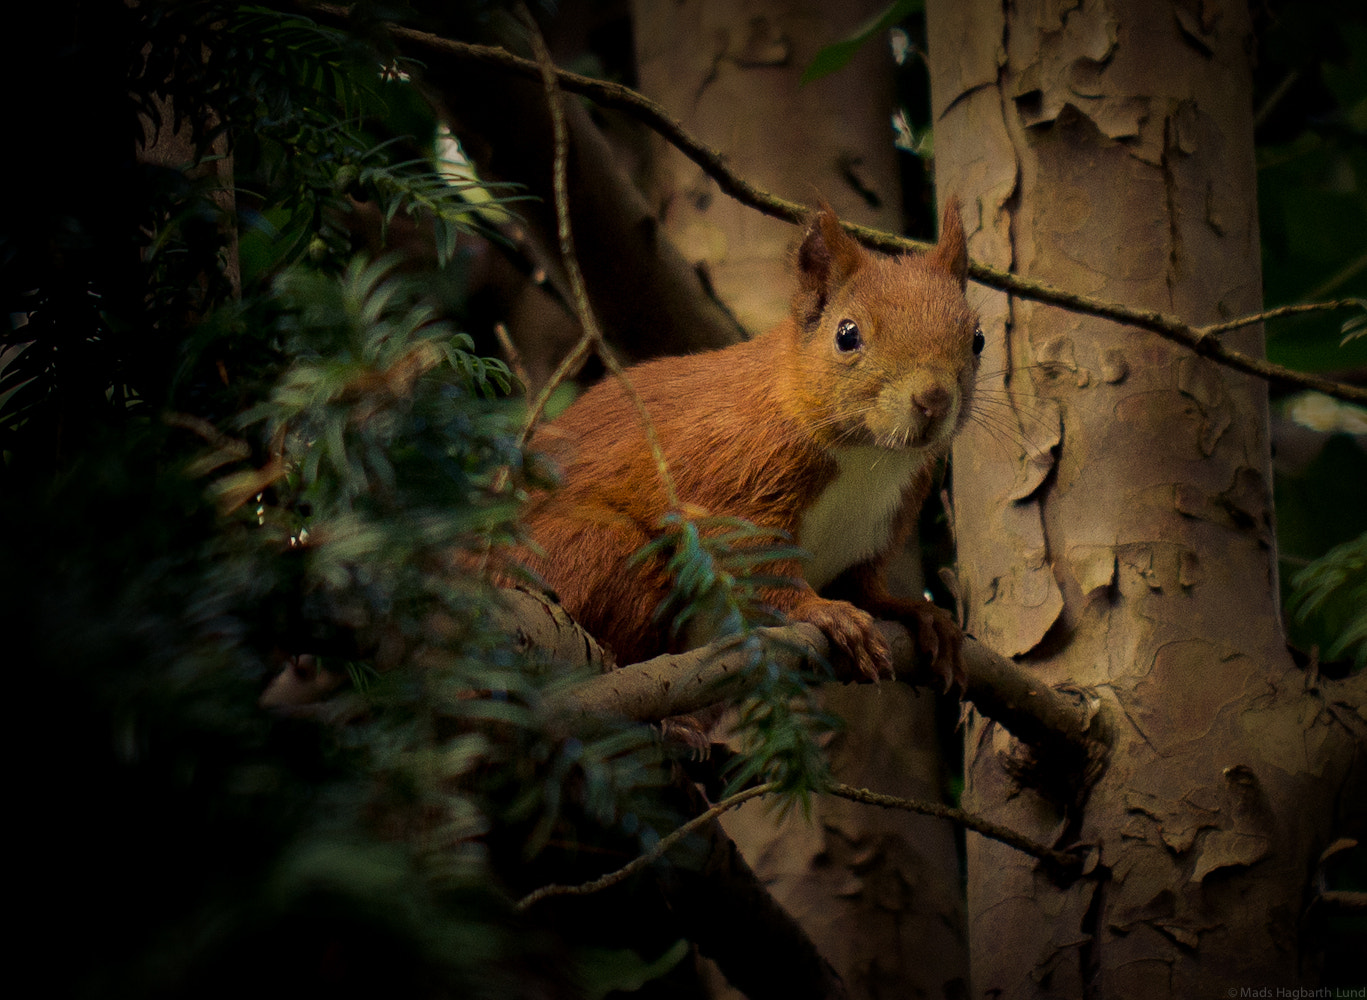 Photograph Squirrel by Mads Hagbarth Lund on 500px